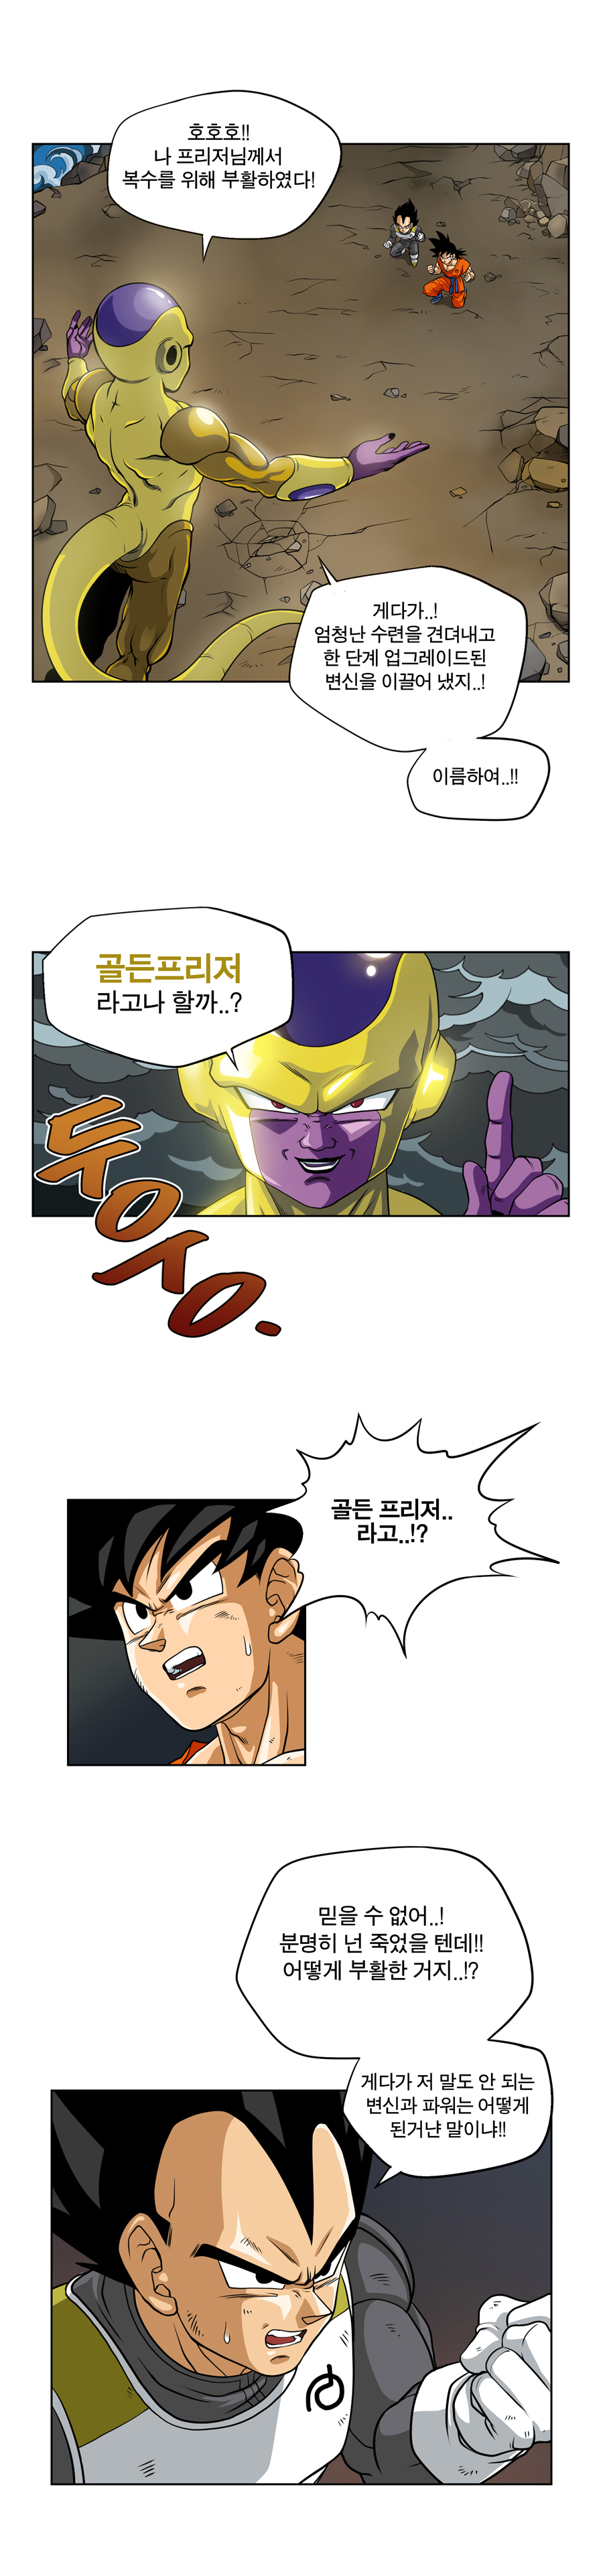 3boys absurdres black_hair clenched_hand comic dougi dragon_ball dragon_ball_z_fukkatsu_no_f frieza golden_frieza highres korean long_image multiple_boys open_mouth son_gokuu spiky_hair sweatdrop tall_image translation_request umelim vegeta